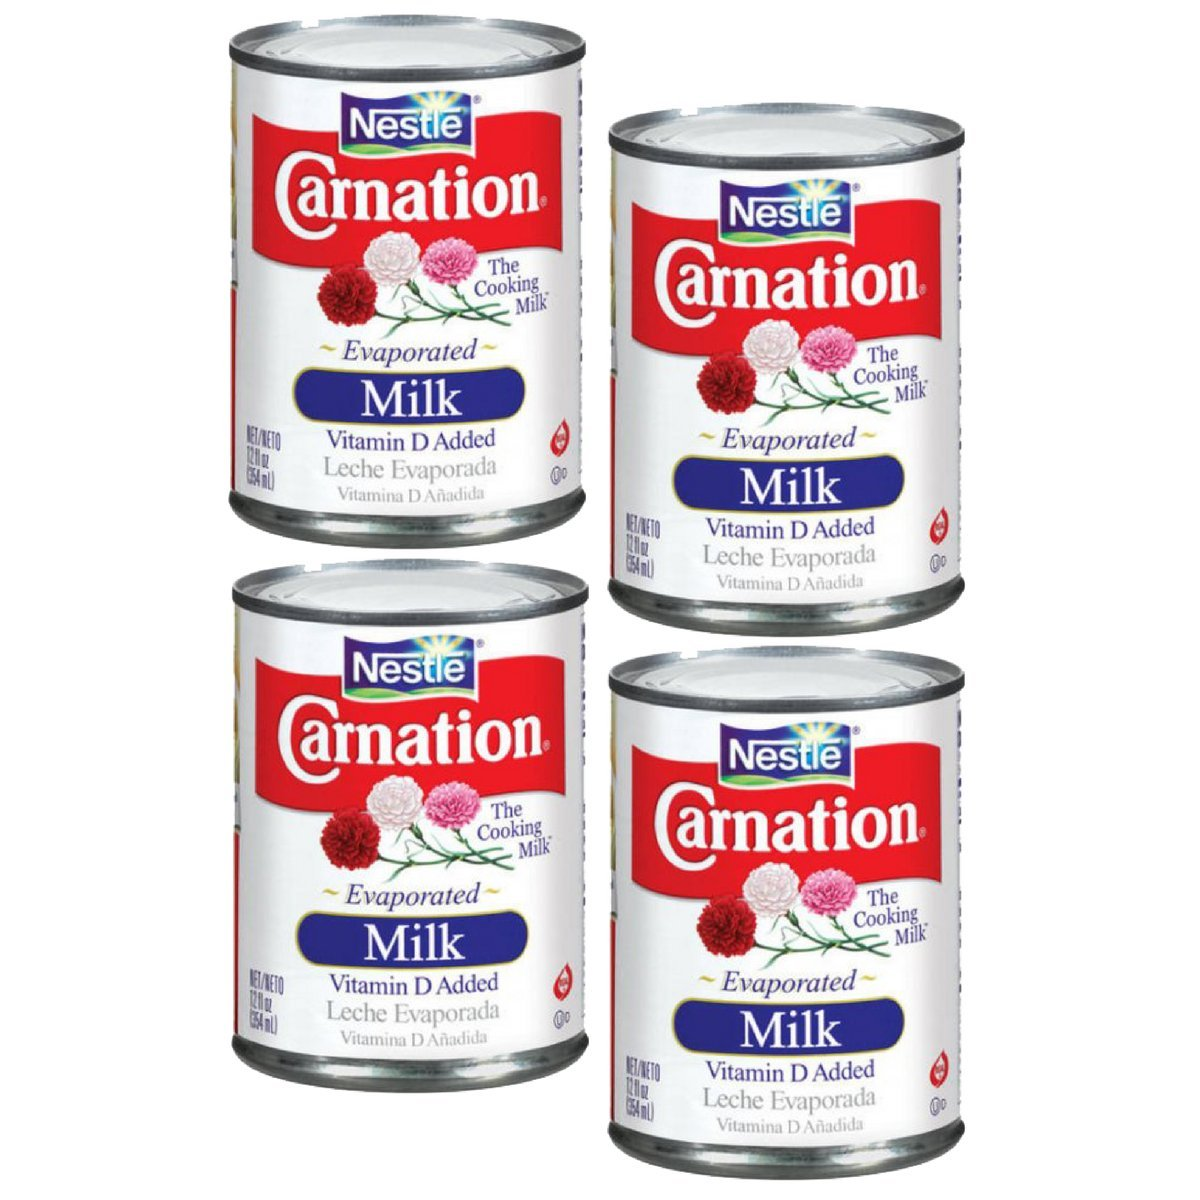 Amazon.com : Nestlé Carnation Evaporated Milk 12oz (Pack of 4) : Grocery & Gourmet Food